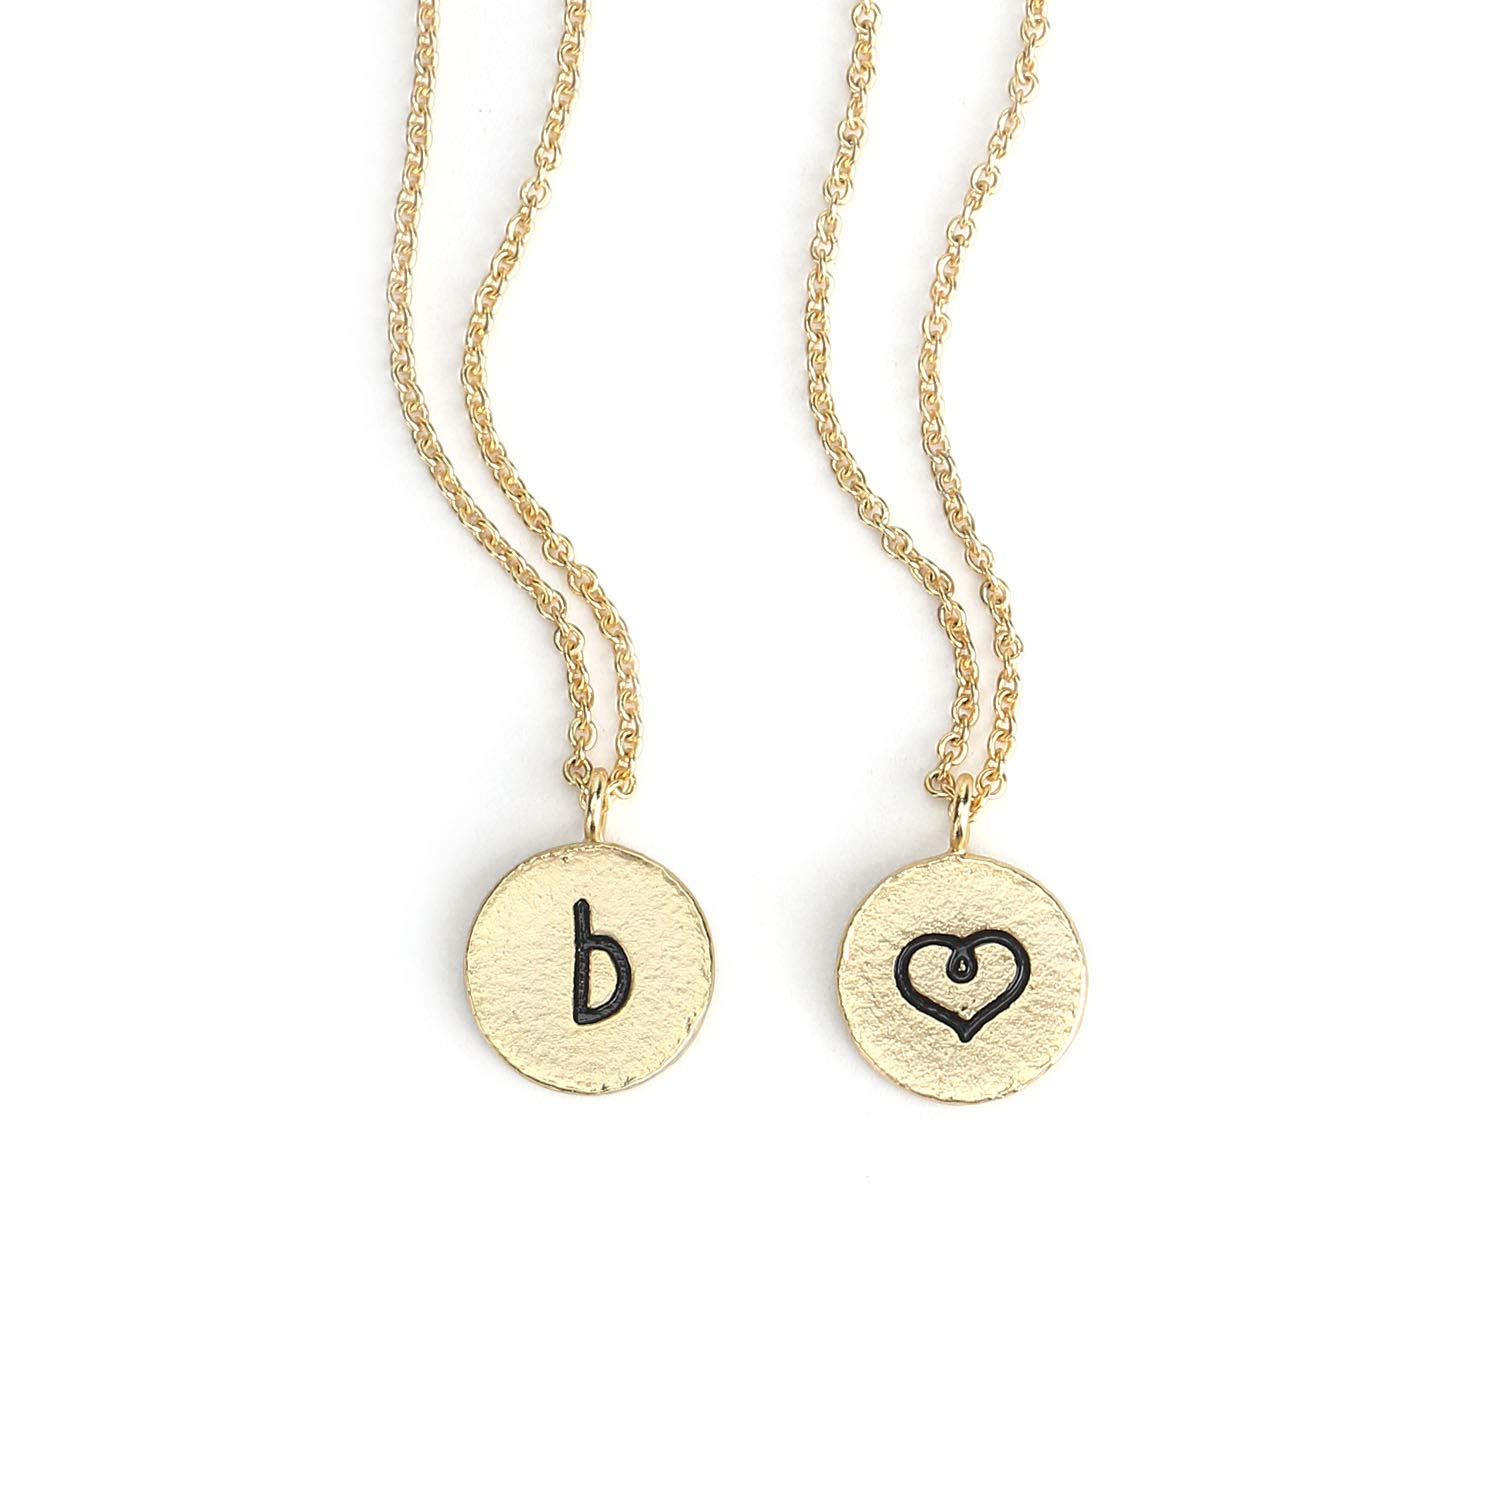 ec4157df5 KISSPAT Initial B Necklace Gold Plated Round Disc Letter Pendant Necklaces  for Women Girls& Teens